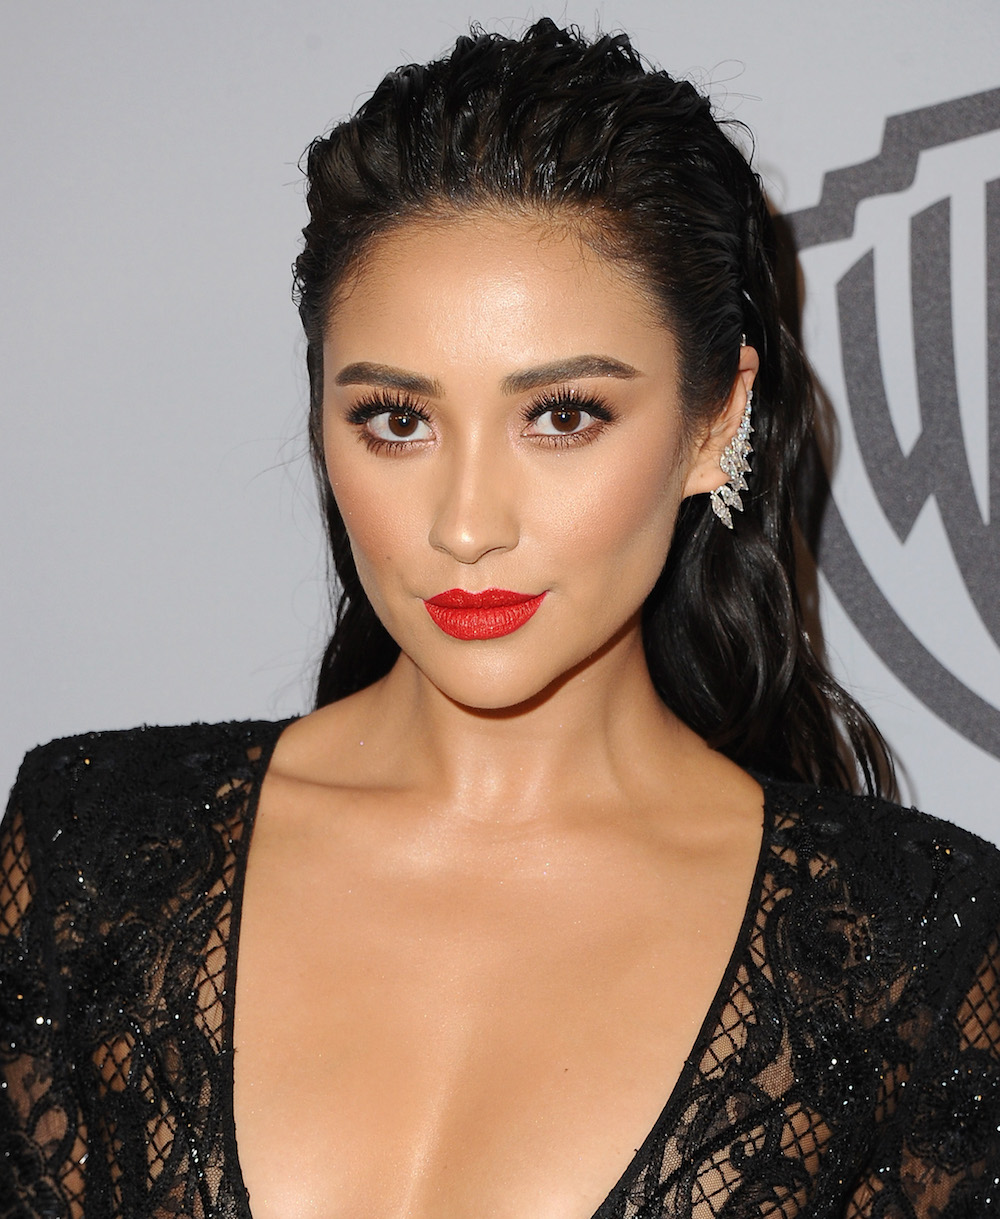 Shay Mitchell wore Kat Von D Beauty's new Studded Kiss lipstick at the Golden Globes after-party